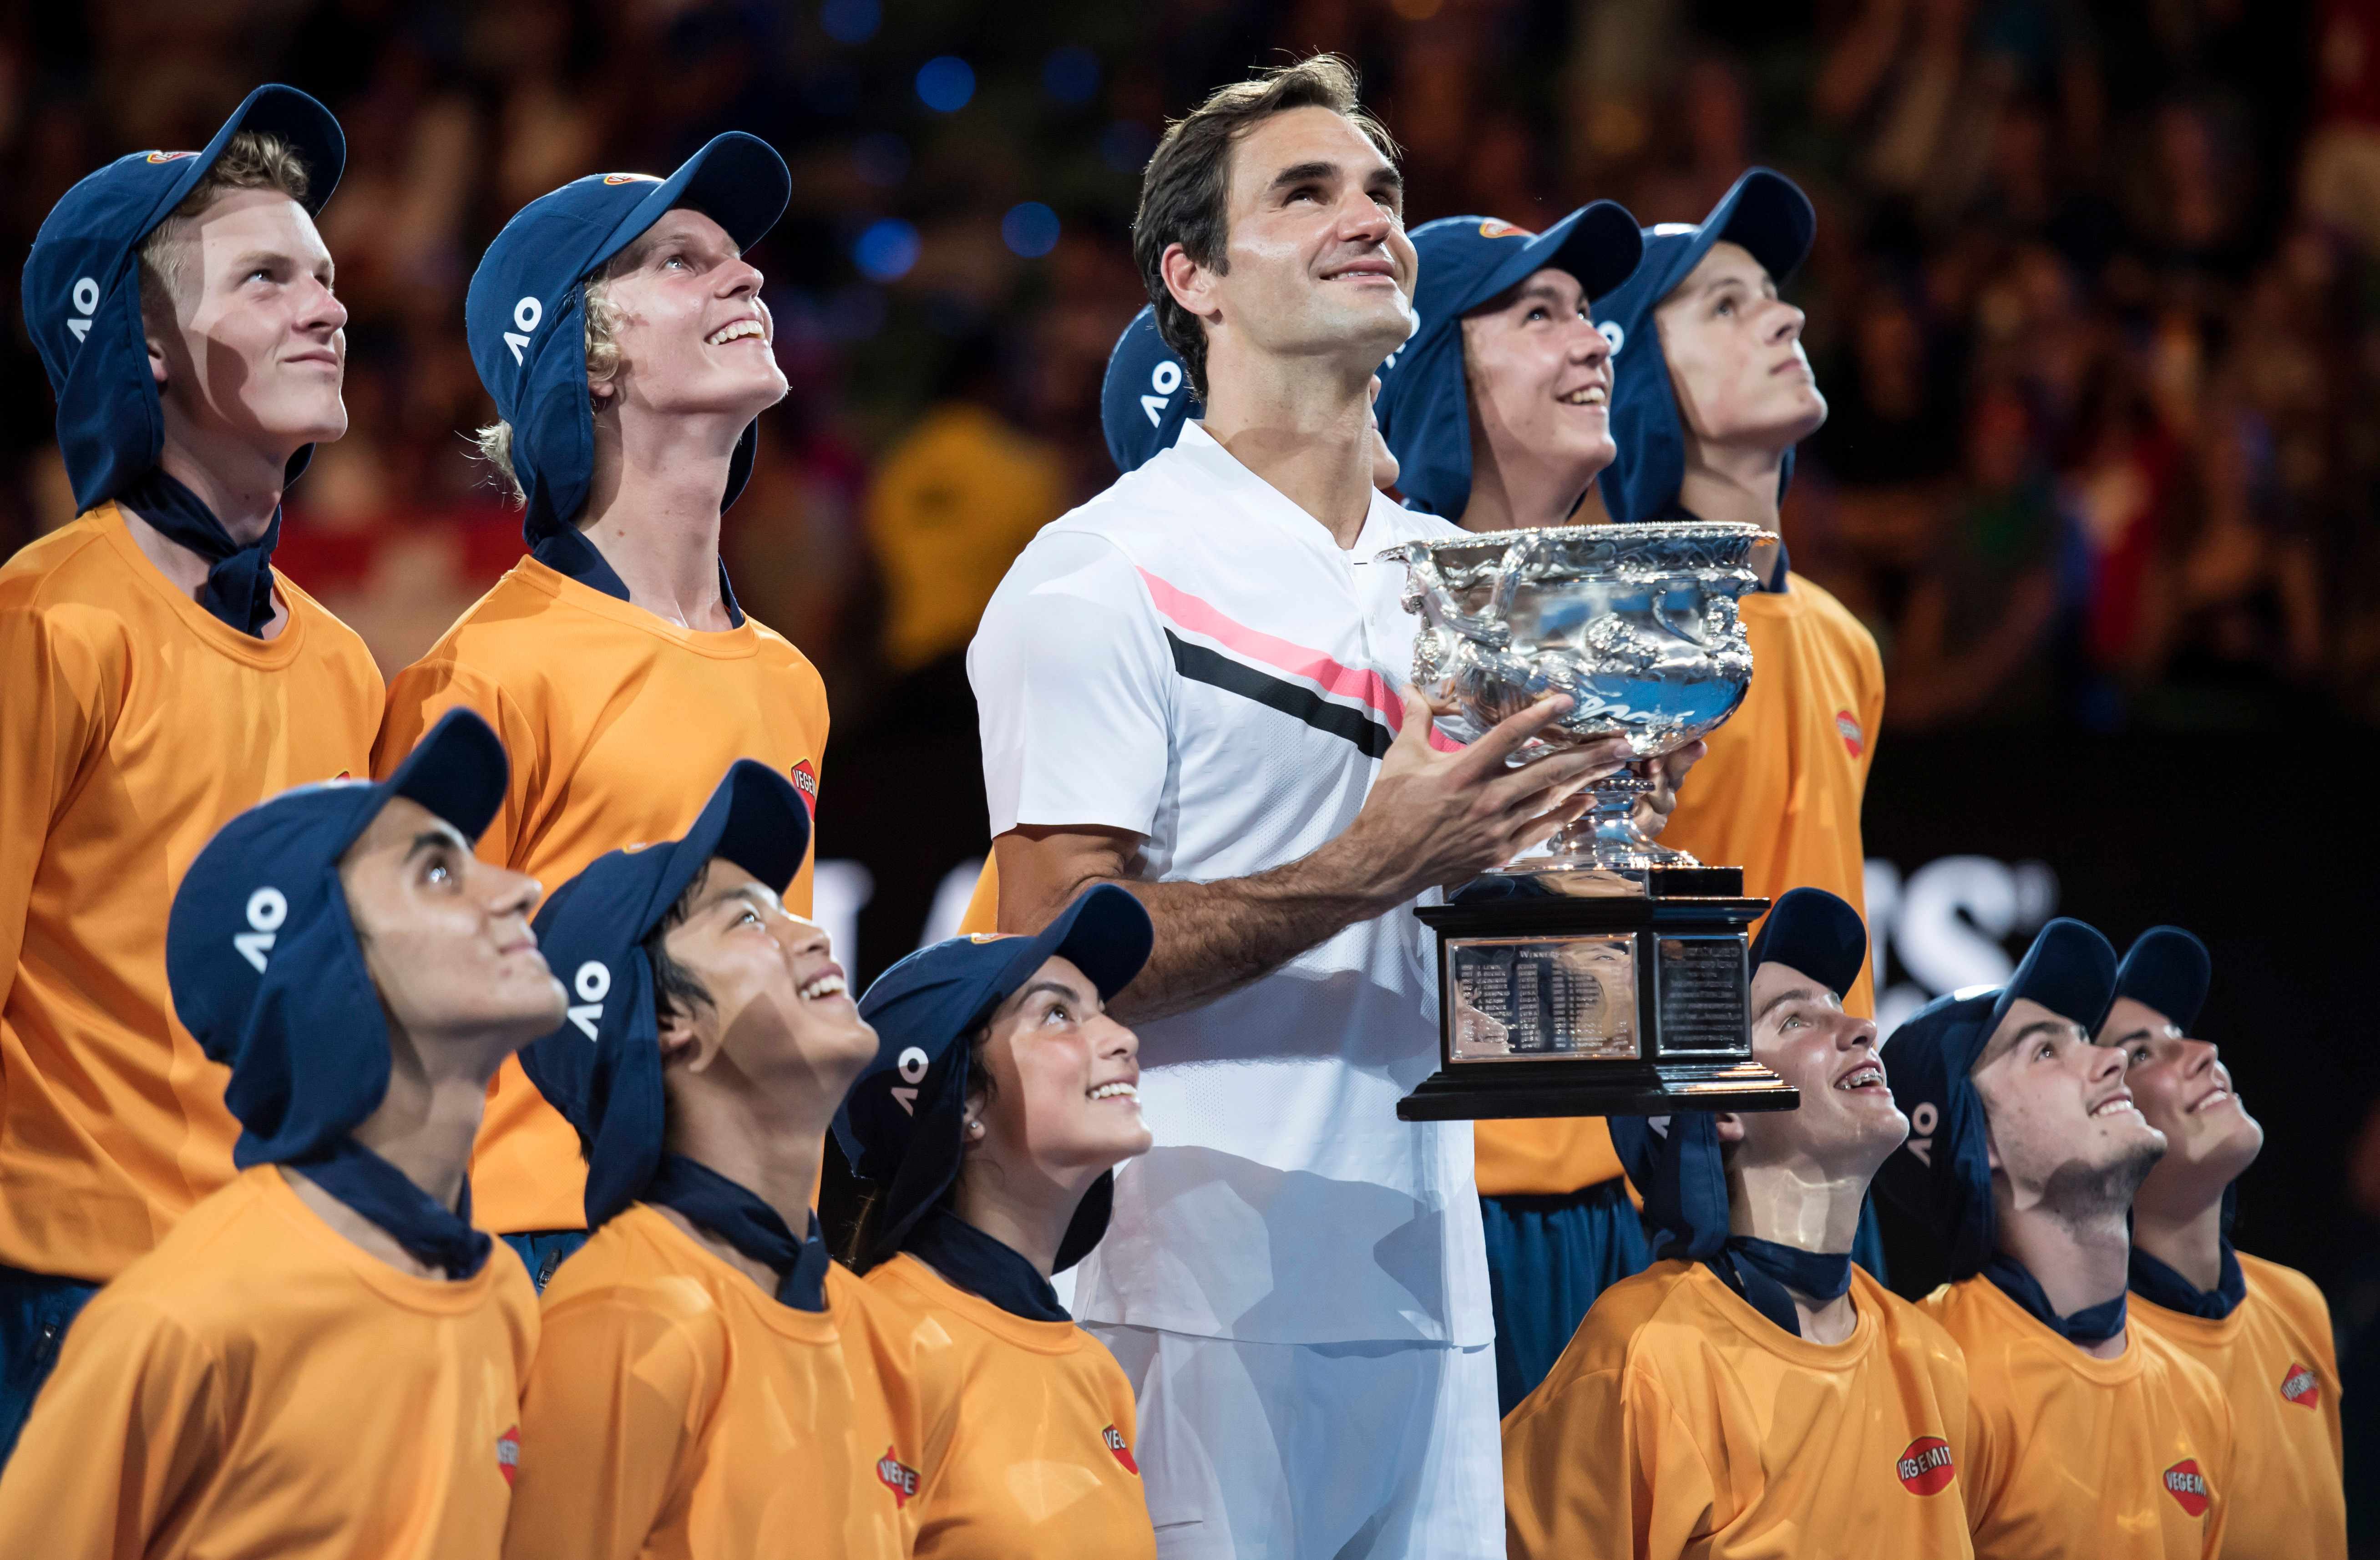 MELBOURNE, AUSTRALIA - JANUARY 28:  Roger Federer celebrates after winning the men's singles tournament against Marin Cilic of Croatia with the ball kids on day 14 of the 2018 Australian Open at Melbourne Park on January 28, 2018 in Melbourne, Australia.  (Photo by James D. Morgan/Getty Images)